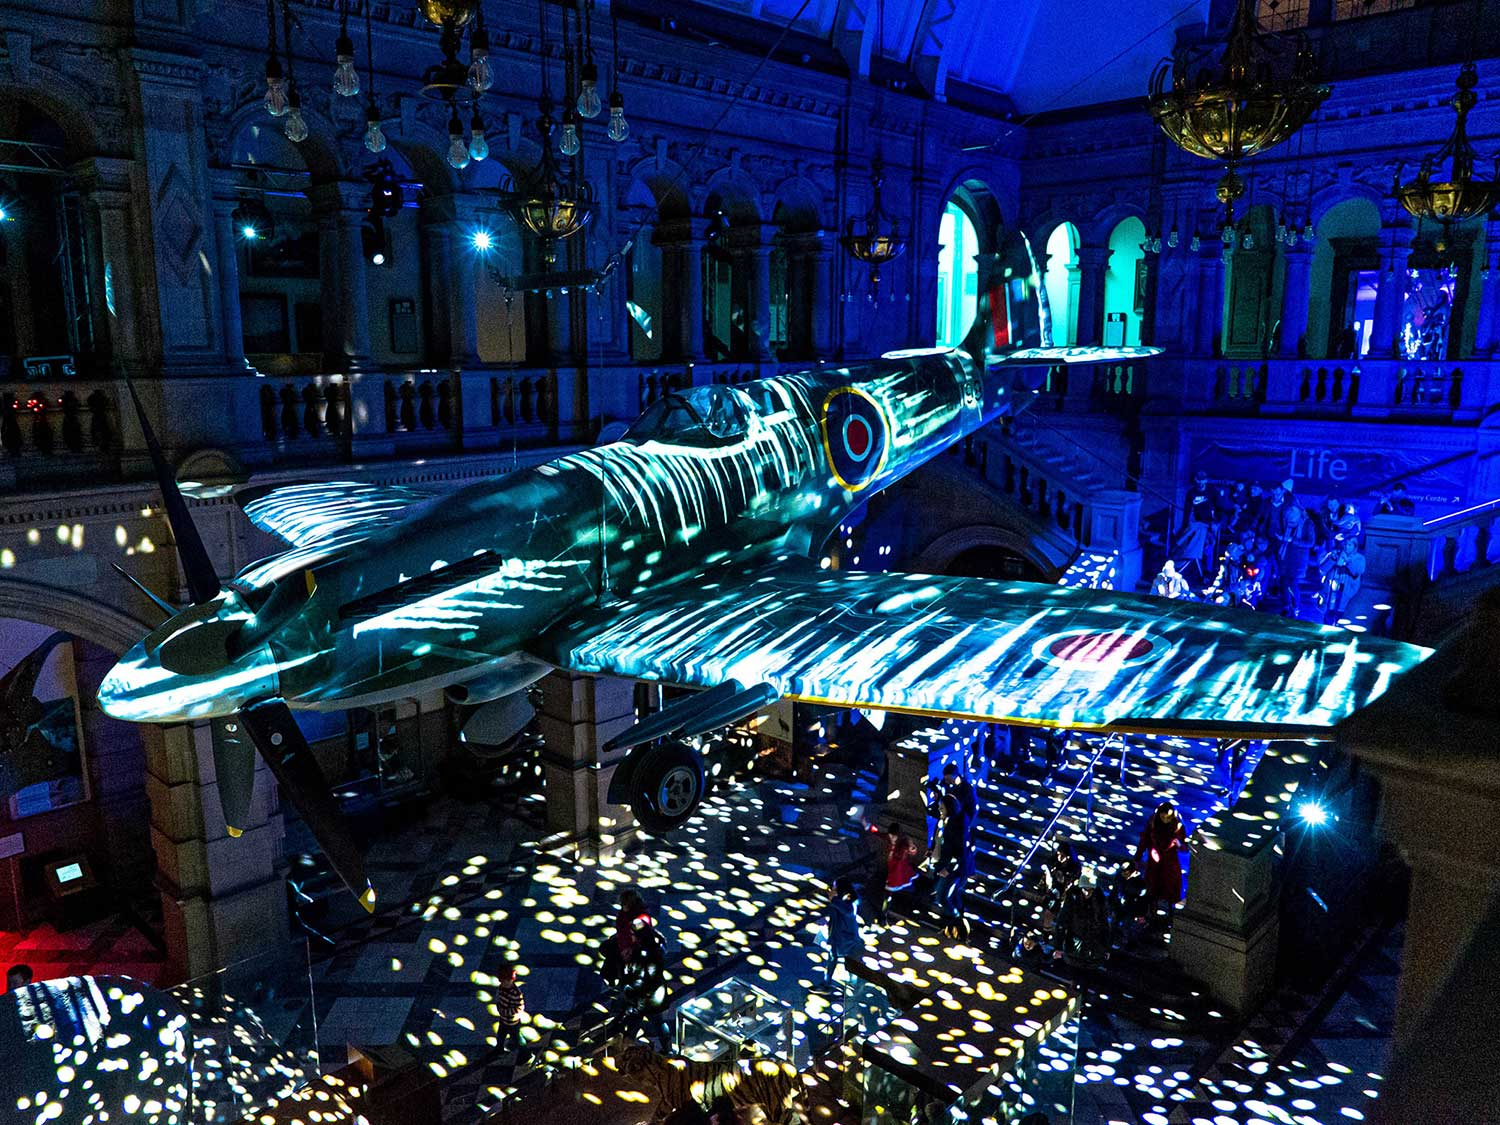 Icicle Projection mapping onto Spitfire, Kevlingrove Glasgow